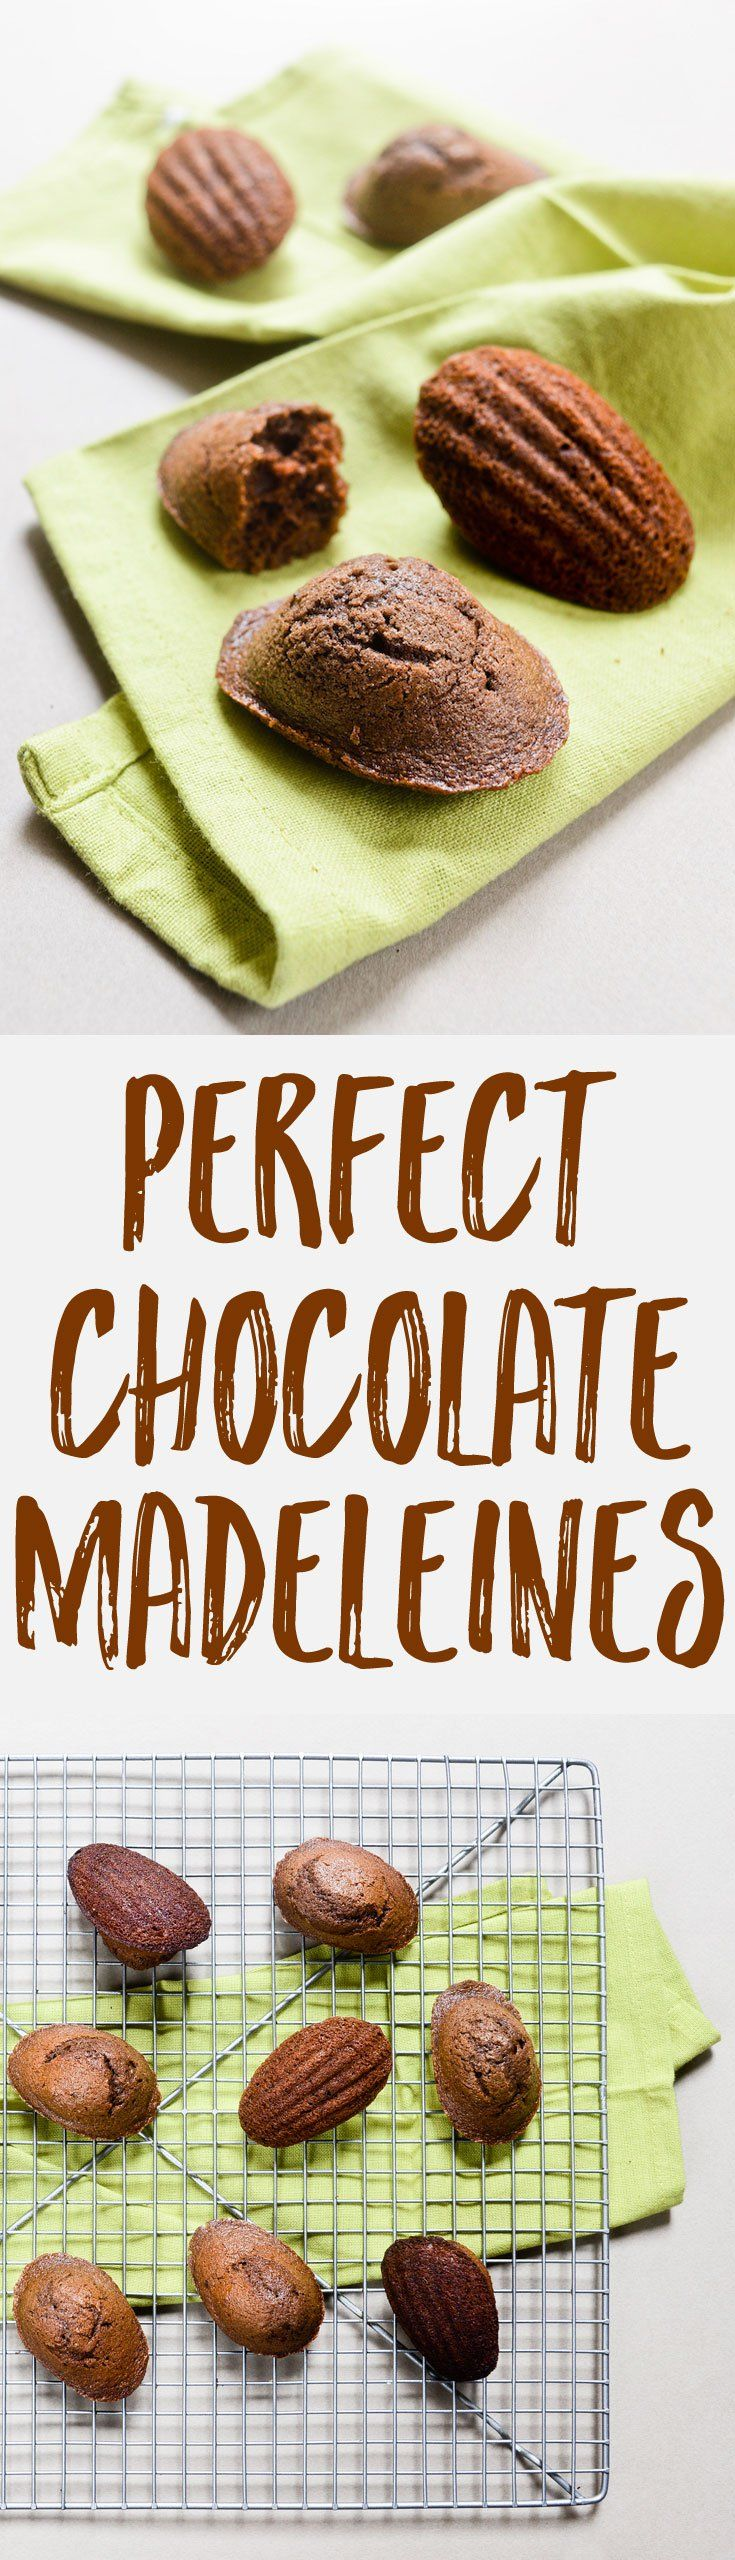 Looking for a recipe to make perfect chocolate madeleines, with an intense chocolate flavor and a nice bumpy top? This is it!